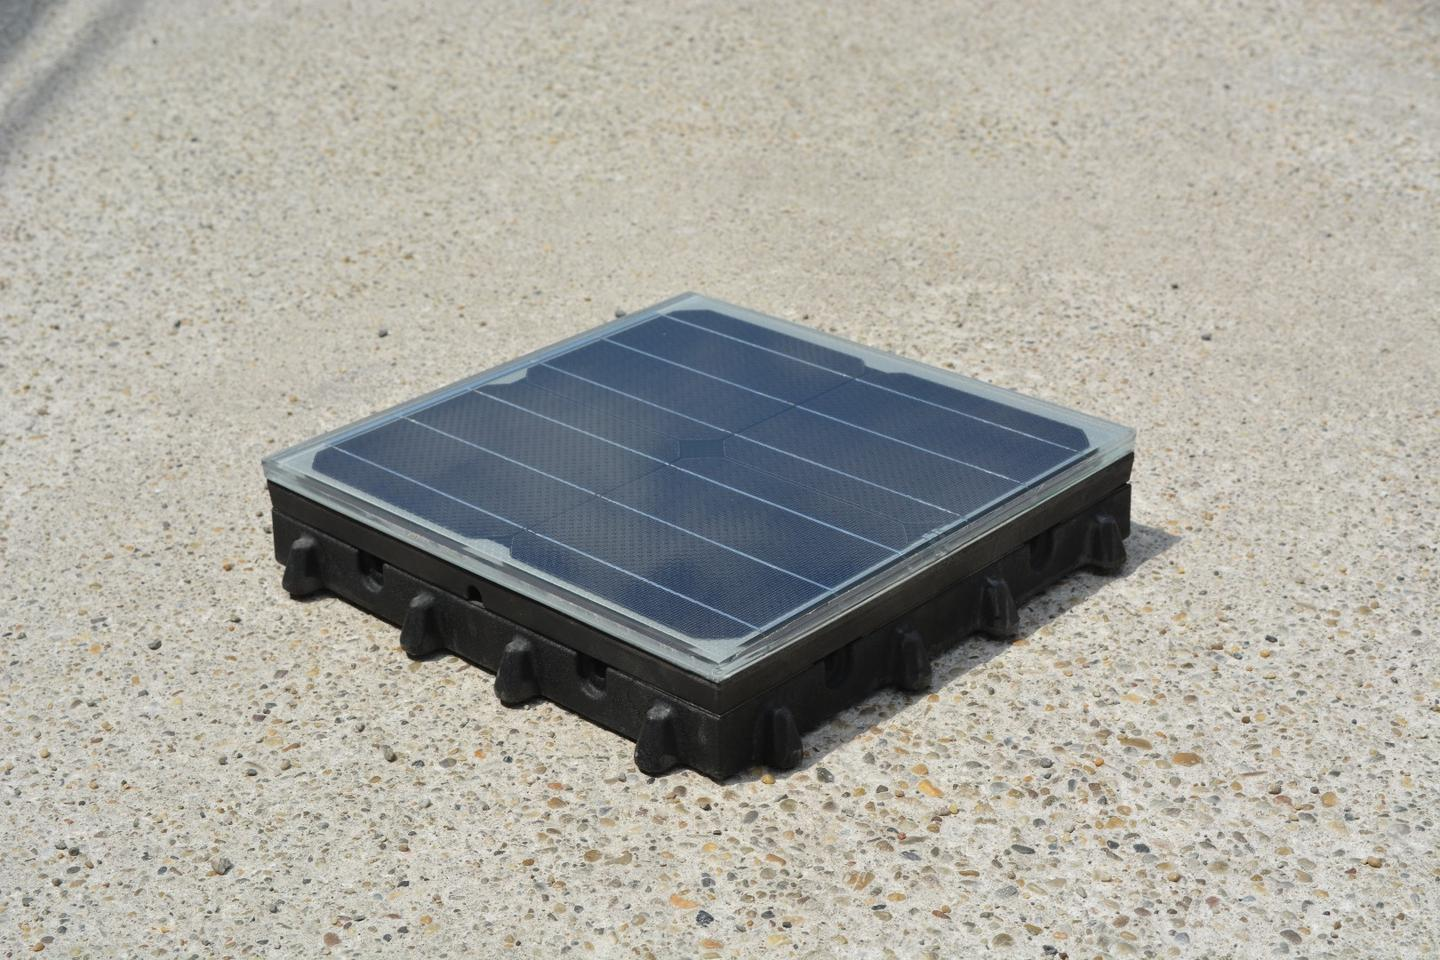 Platio's PV-packed paving tile houses all the necessary wiring and cabling for a quick install